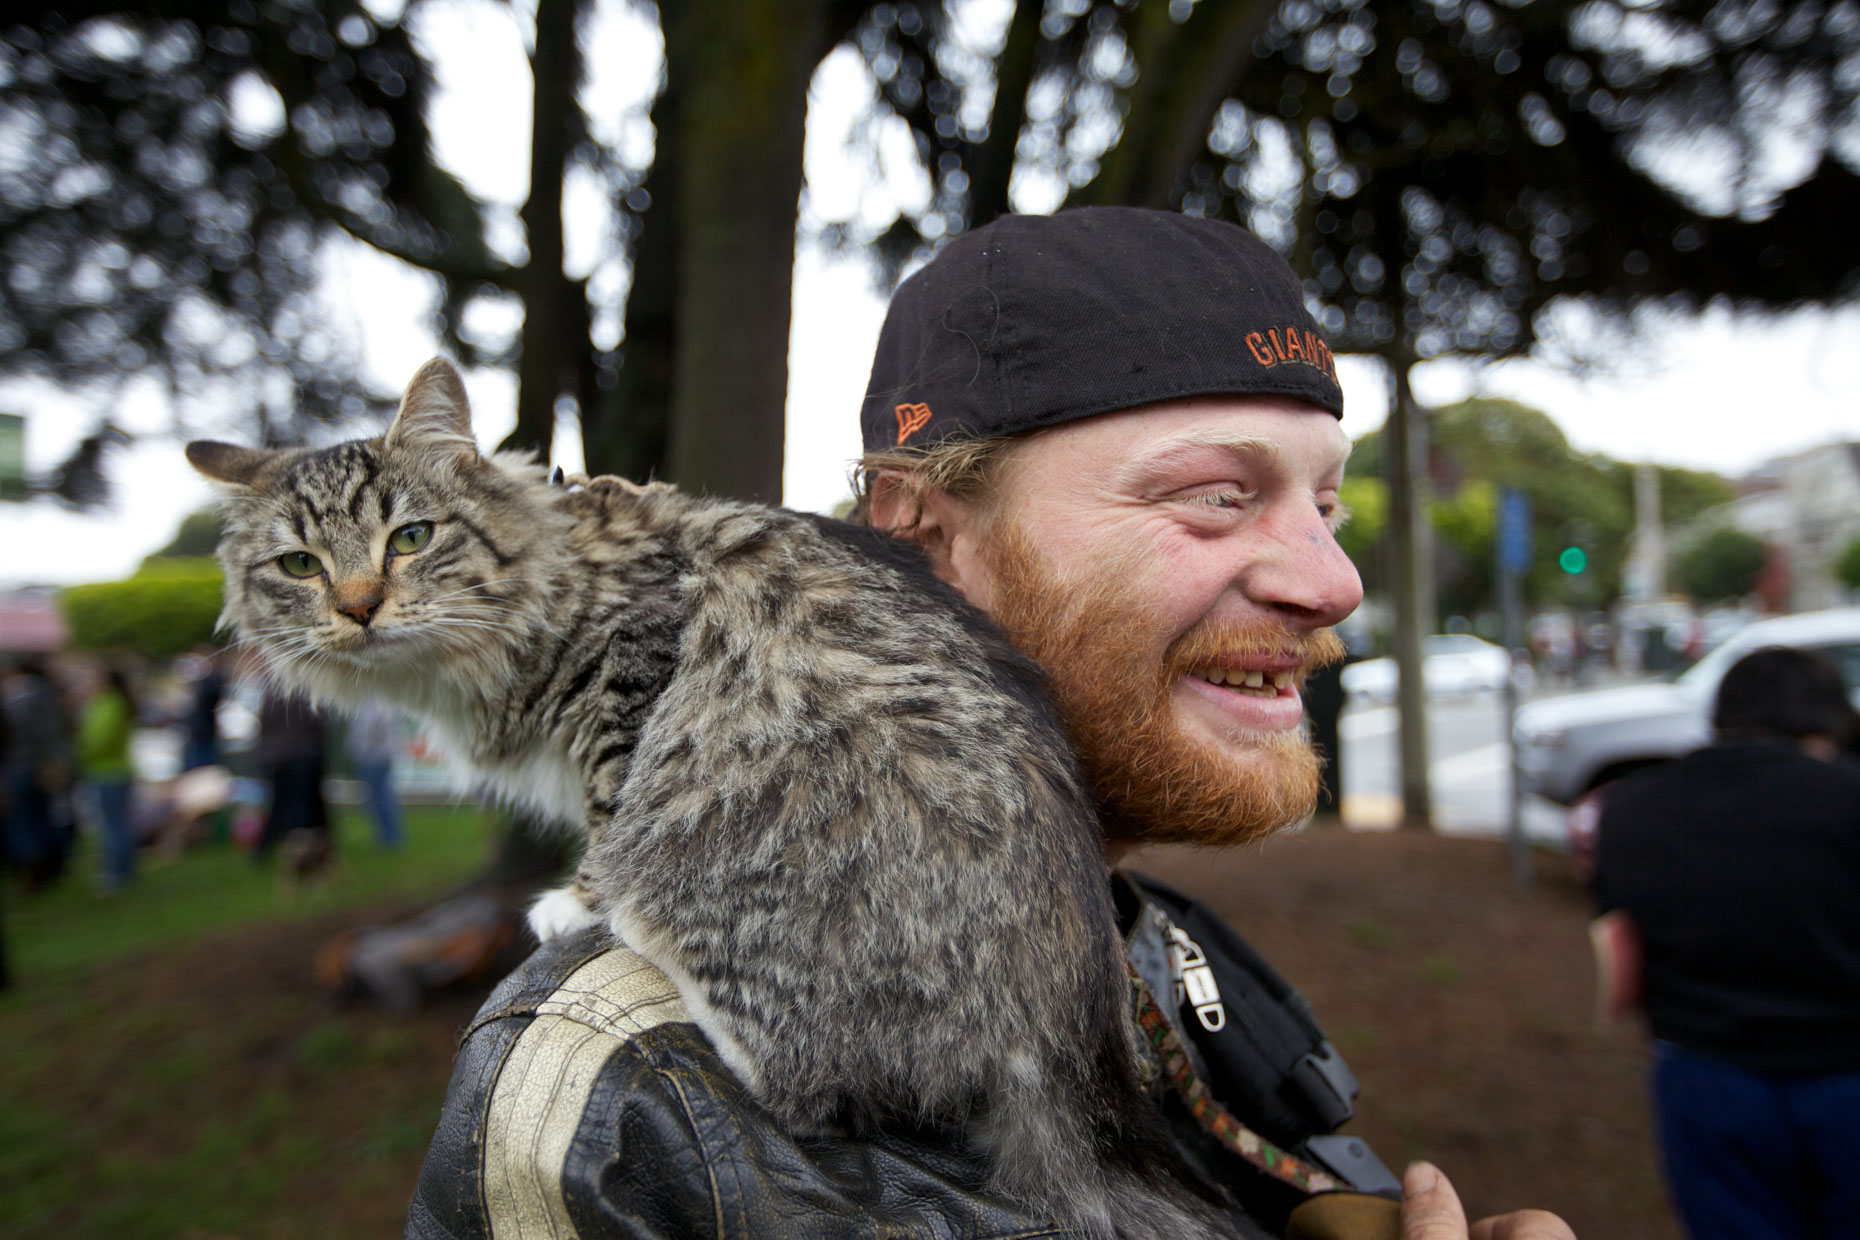 Editorial Photography | Man with Cat on Shoulder by Mark Rogers